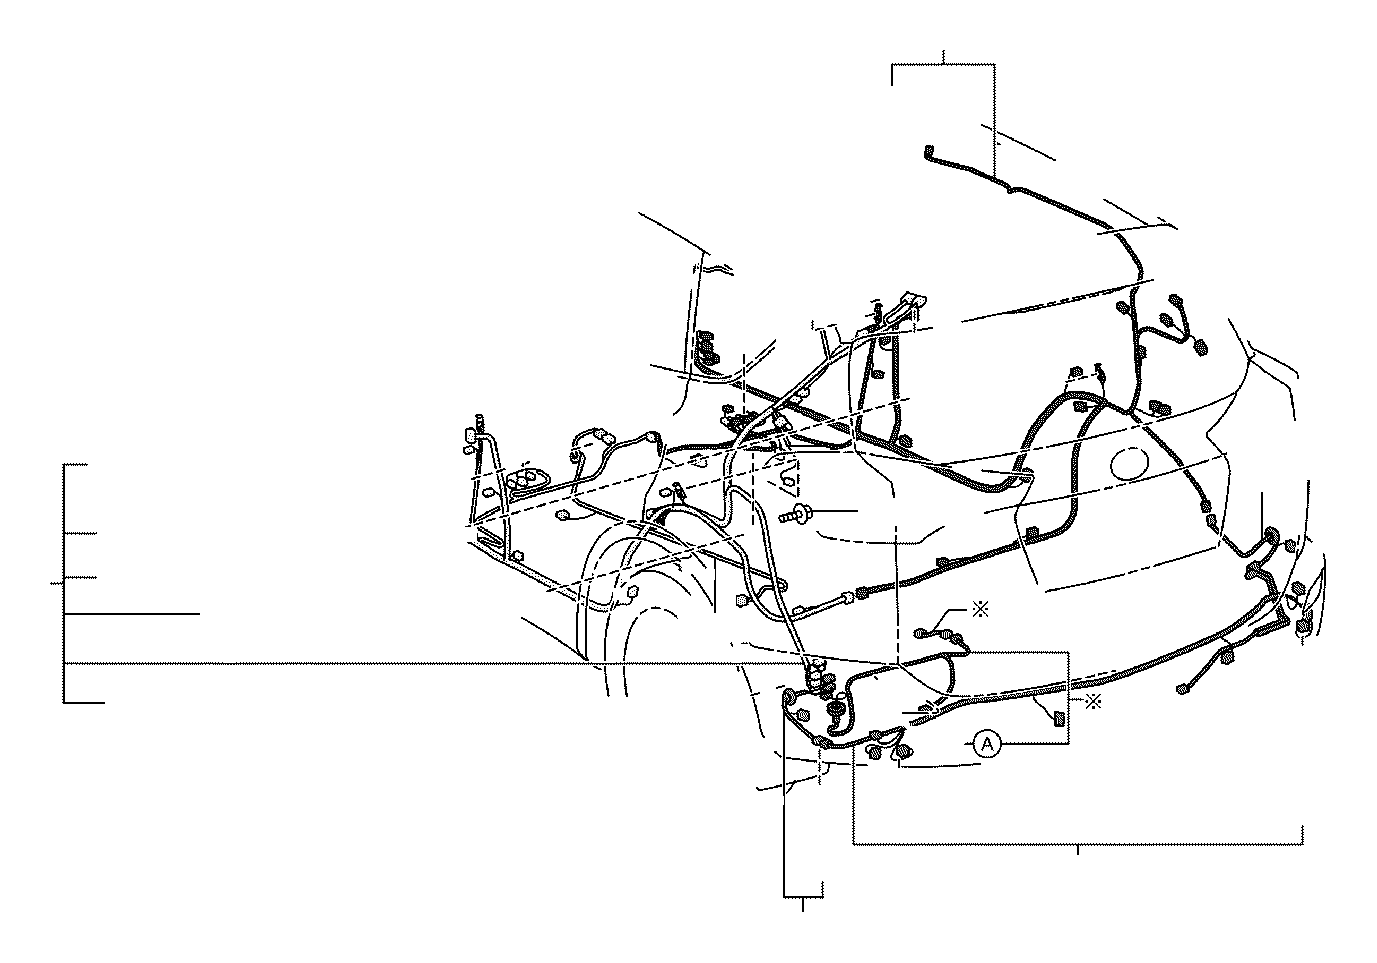 Toyota RAV4 Wire, luggage room, no. 2. Electrical, cnd